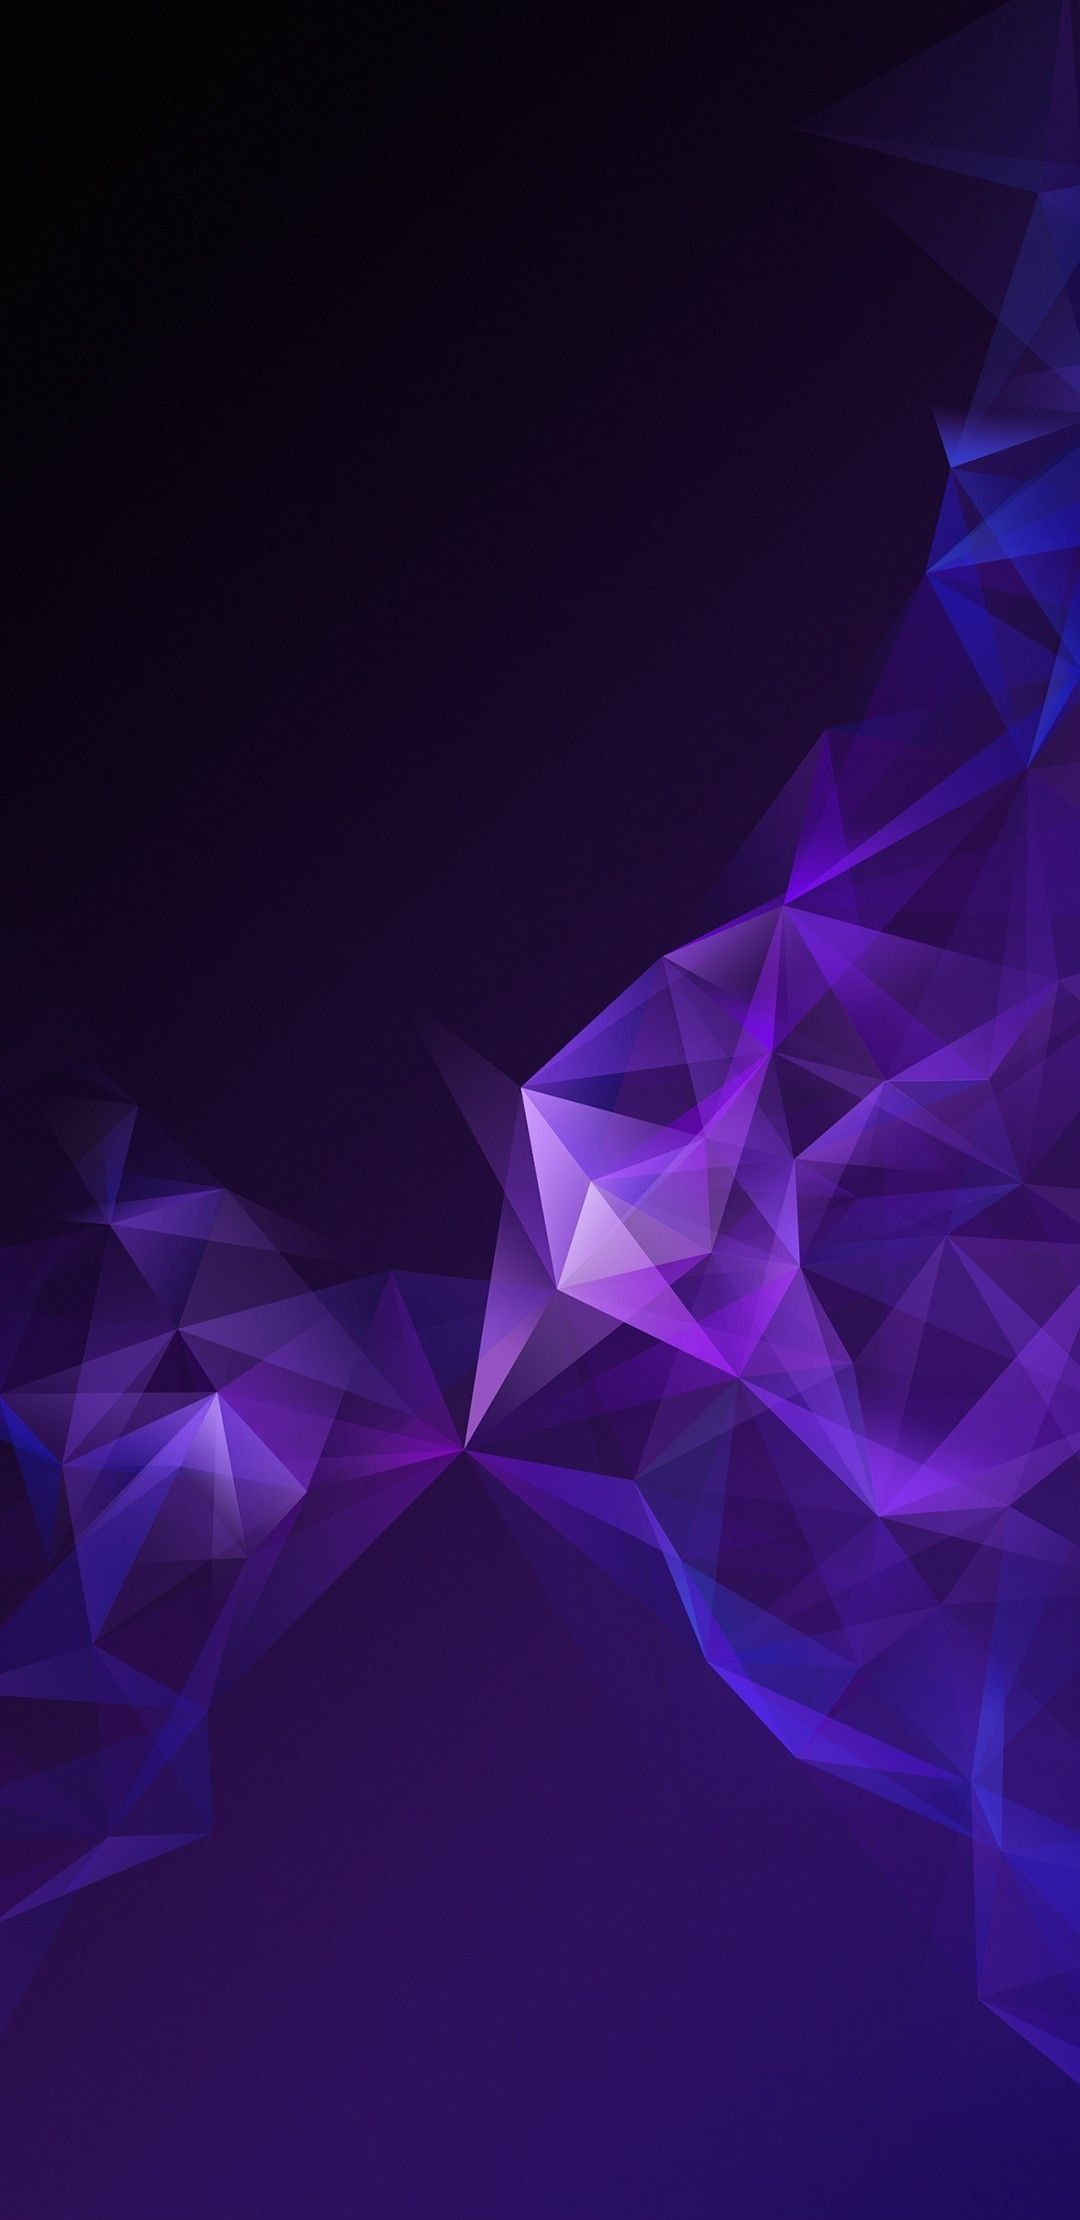 1080x2220 87+ Geometric Iphone Wallpapers on WallpaperPlay